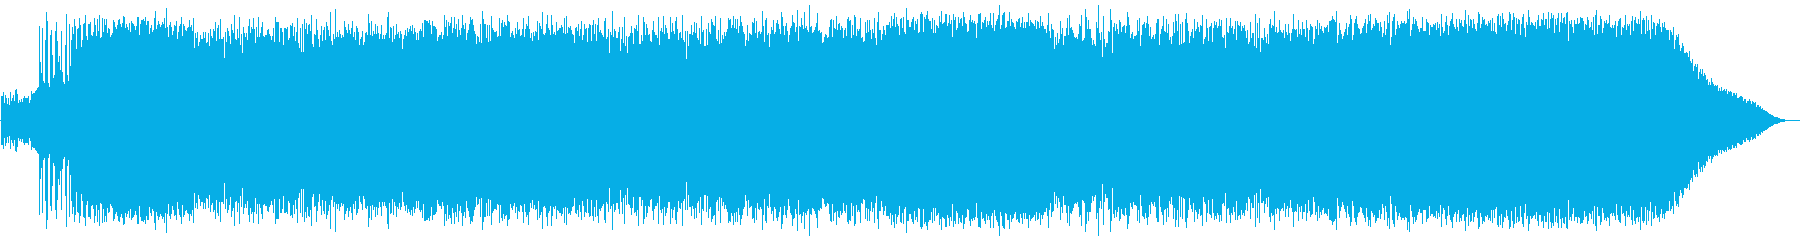 Hard rock with a sense of speed's reproduced waveform